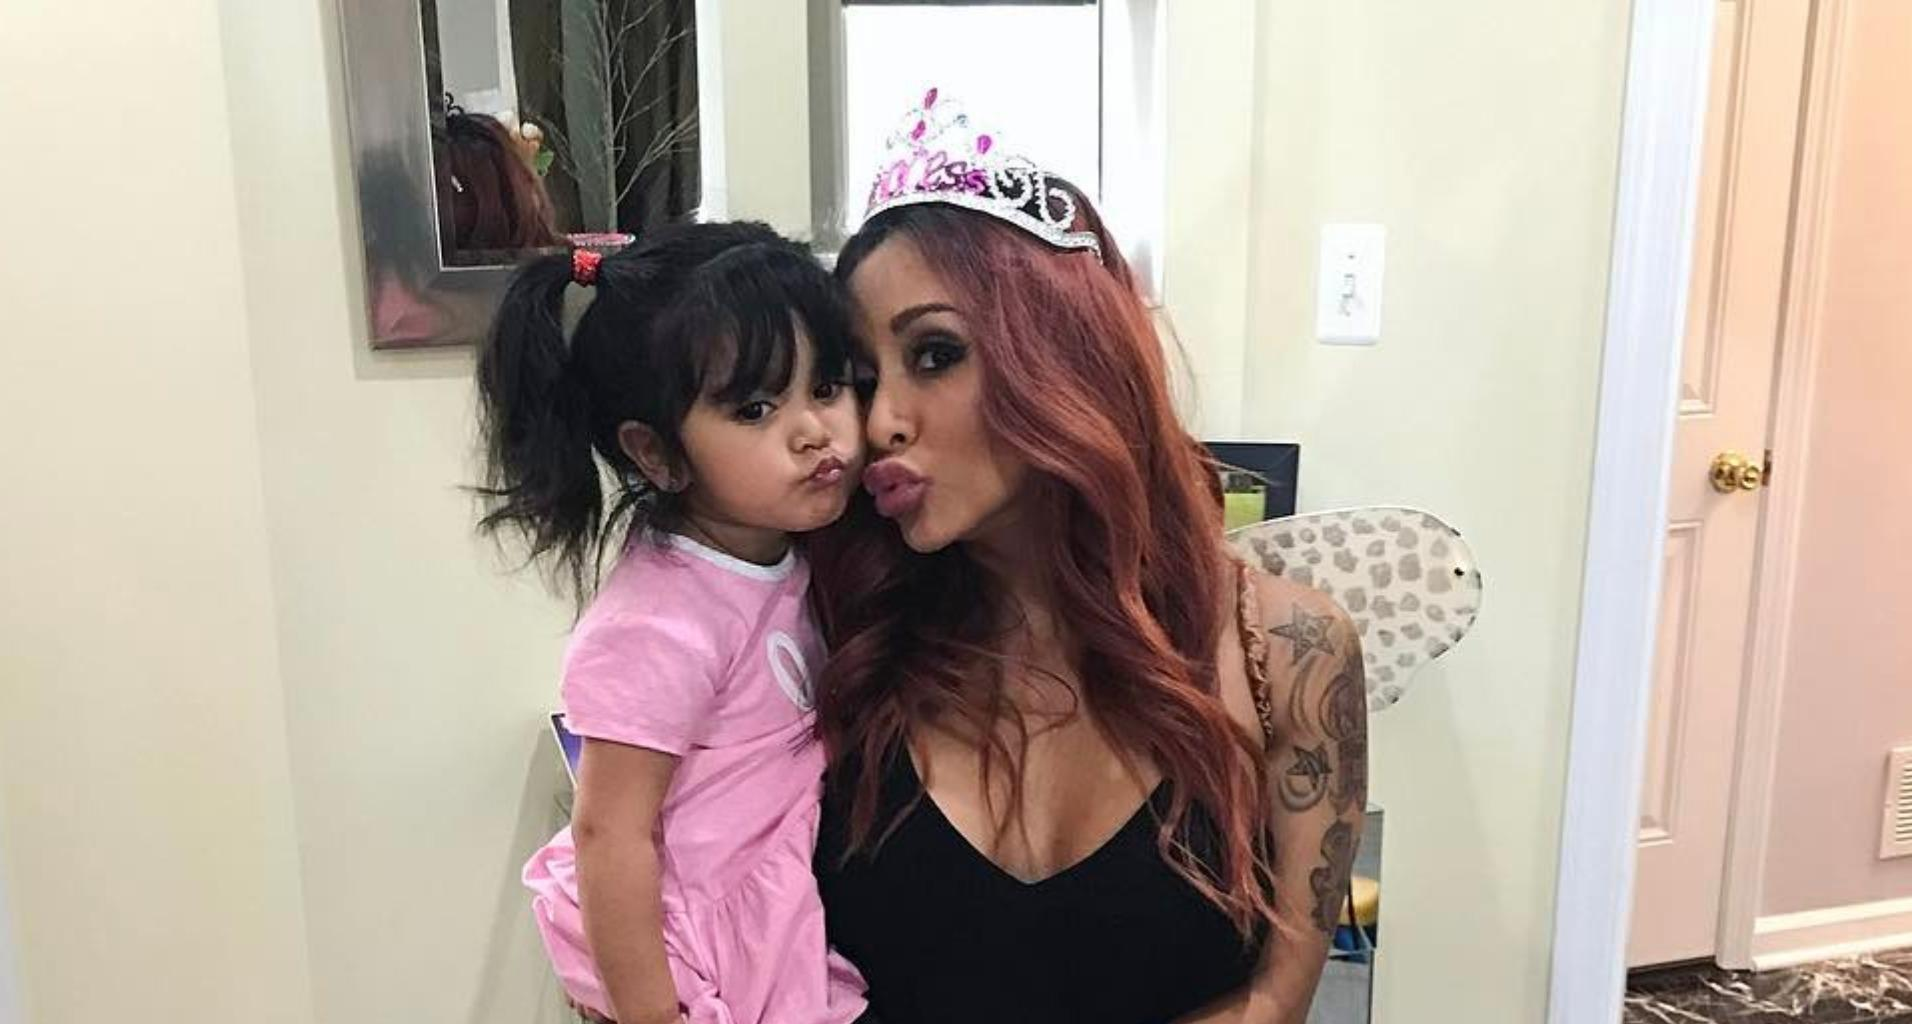 Snooki Can't Wait To Finally Welcome Her Third Baby - Says She Feels 'Miserable!'